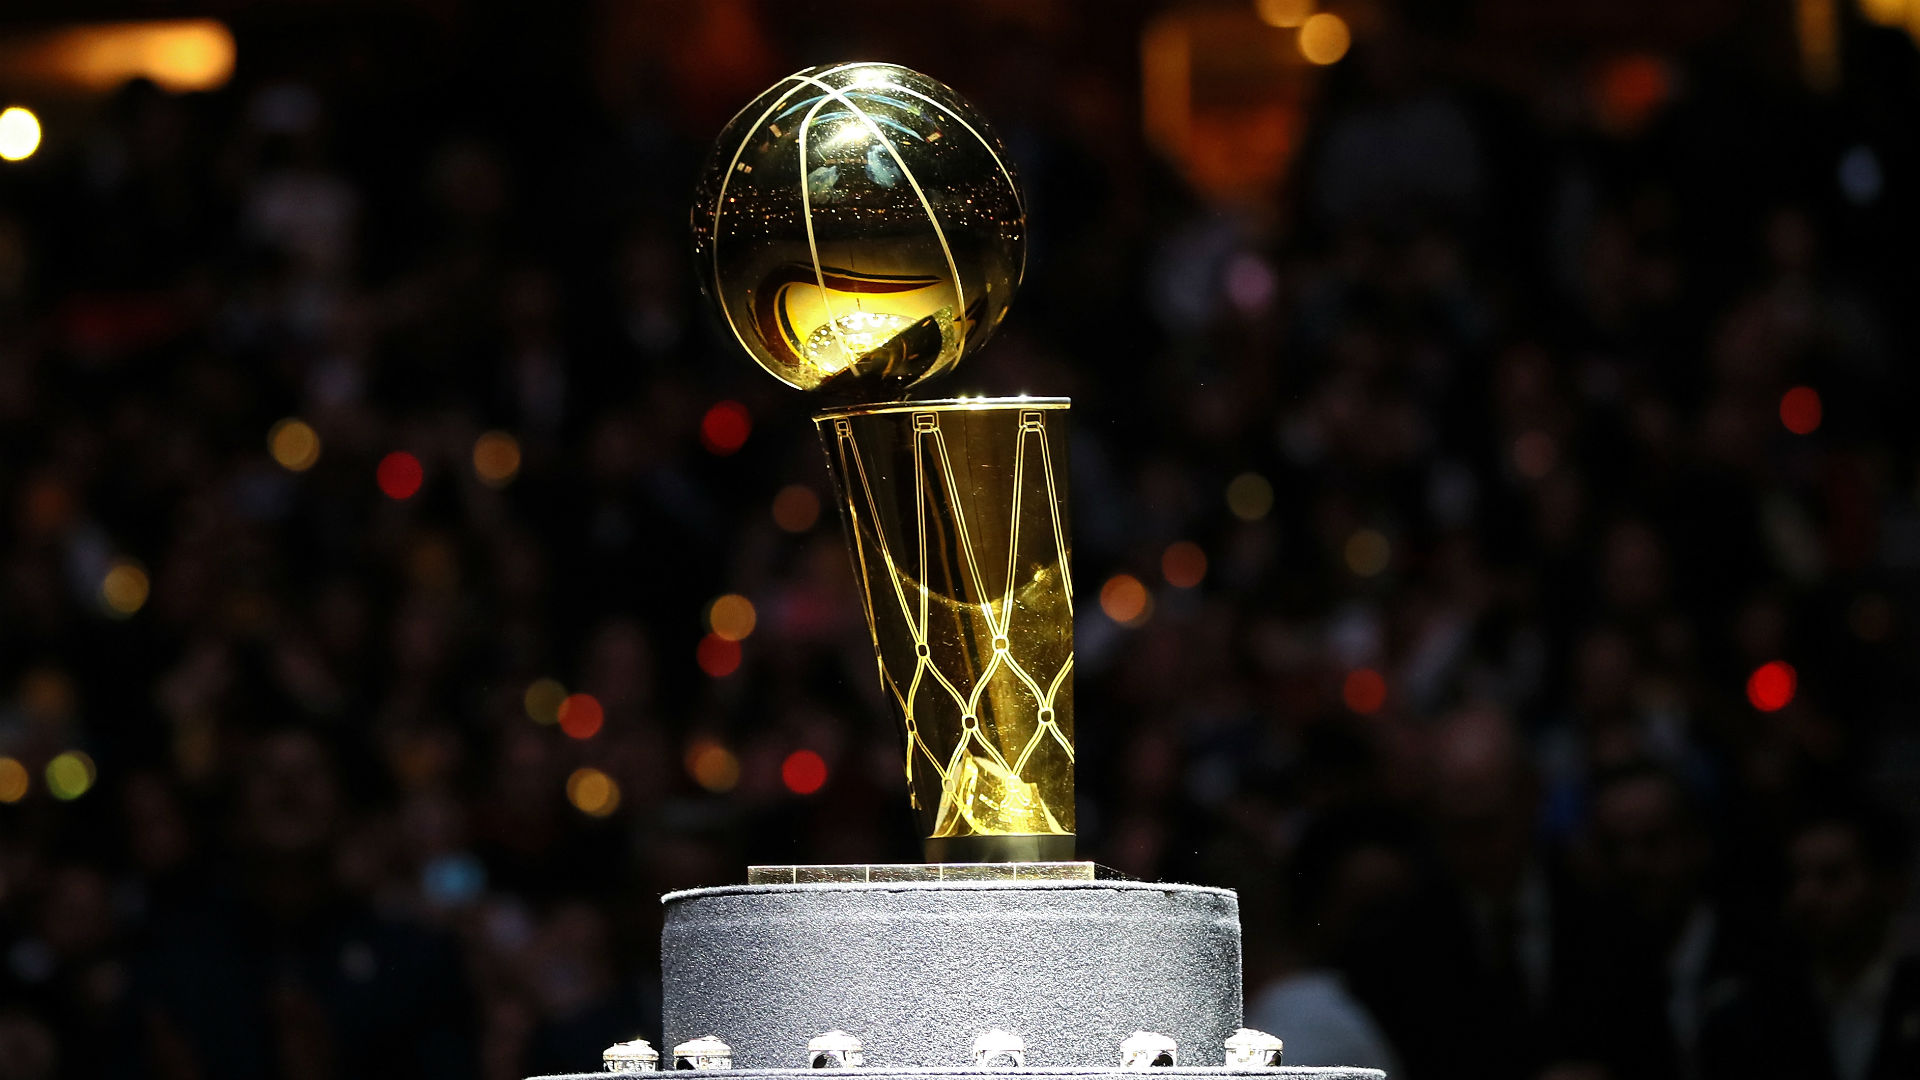 Who will lift the Larry O'Brien Trophy at the end of the season?